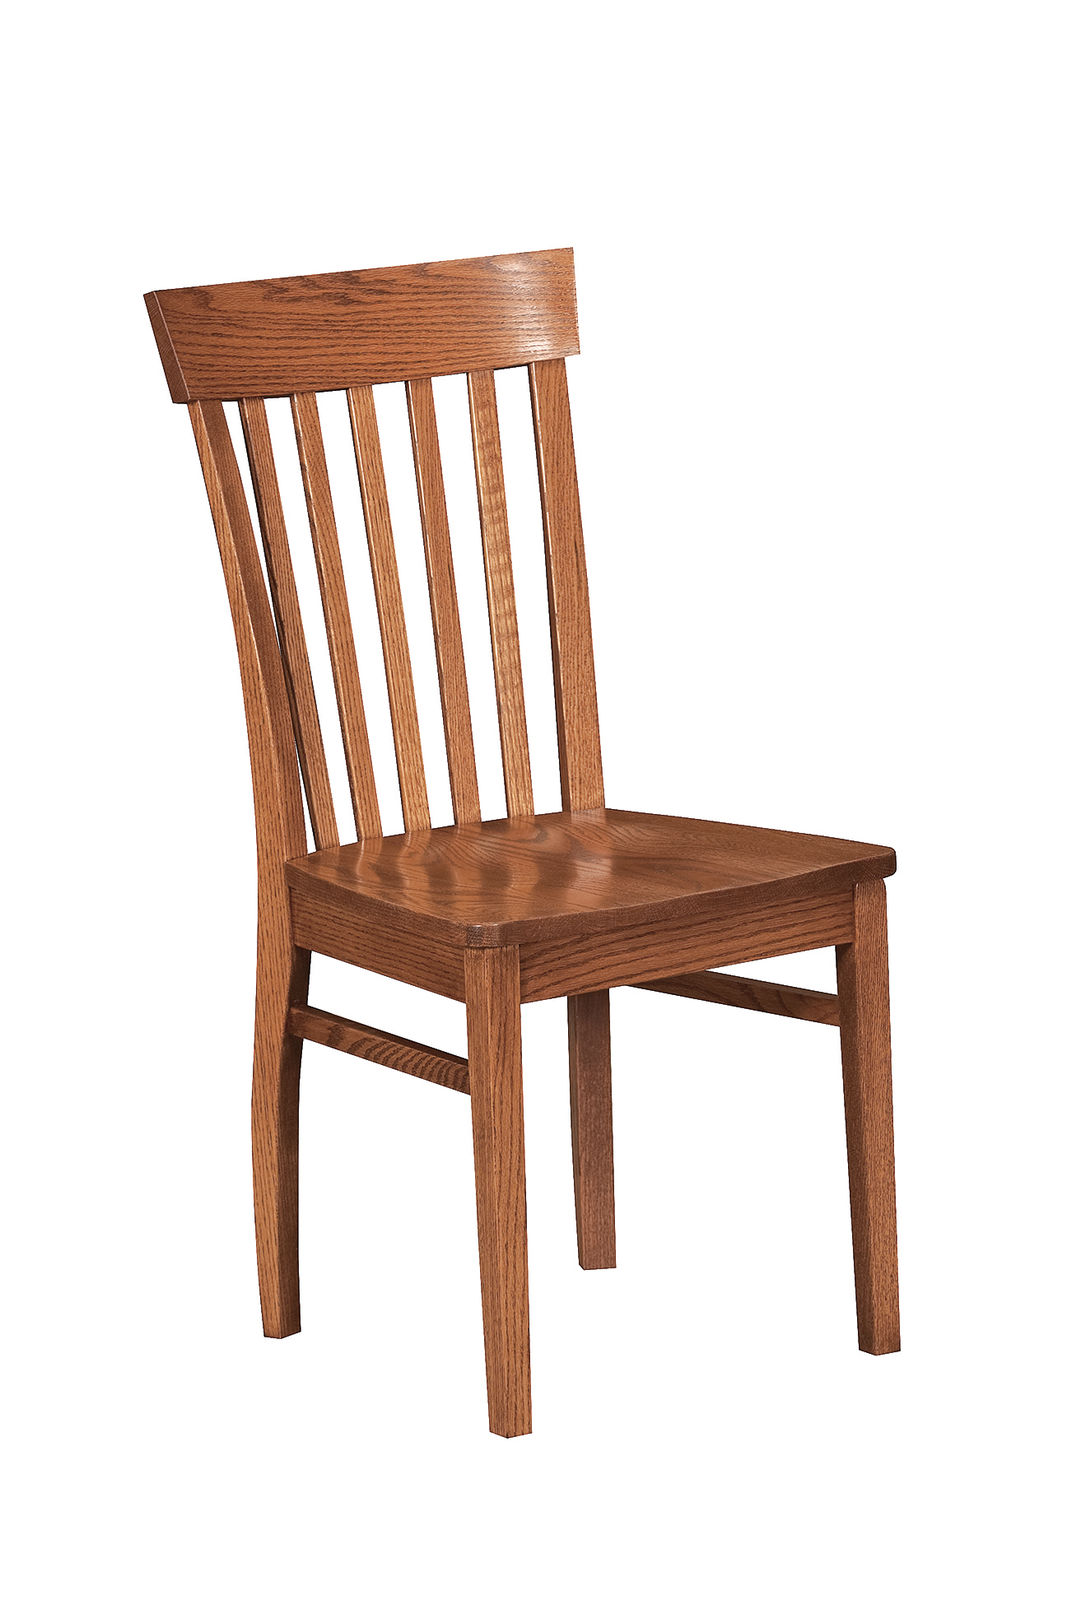 Photo of: HW Venice Side Chair